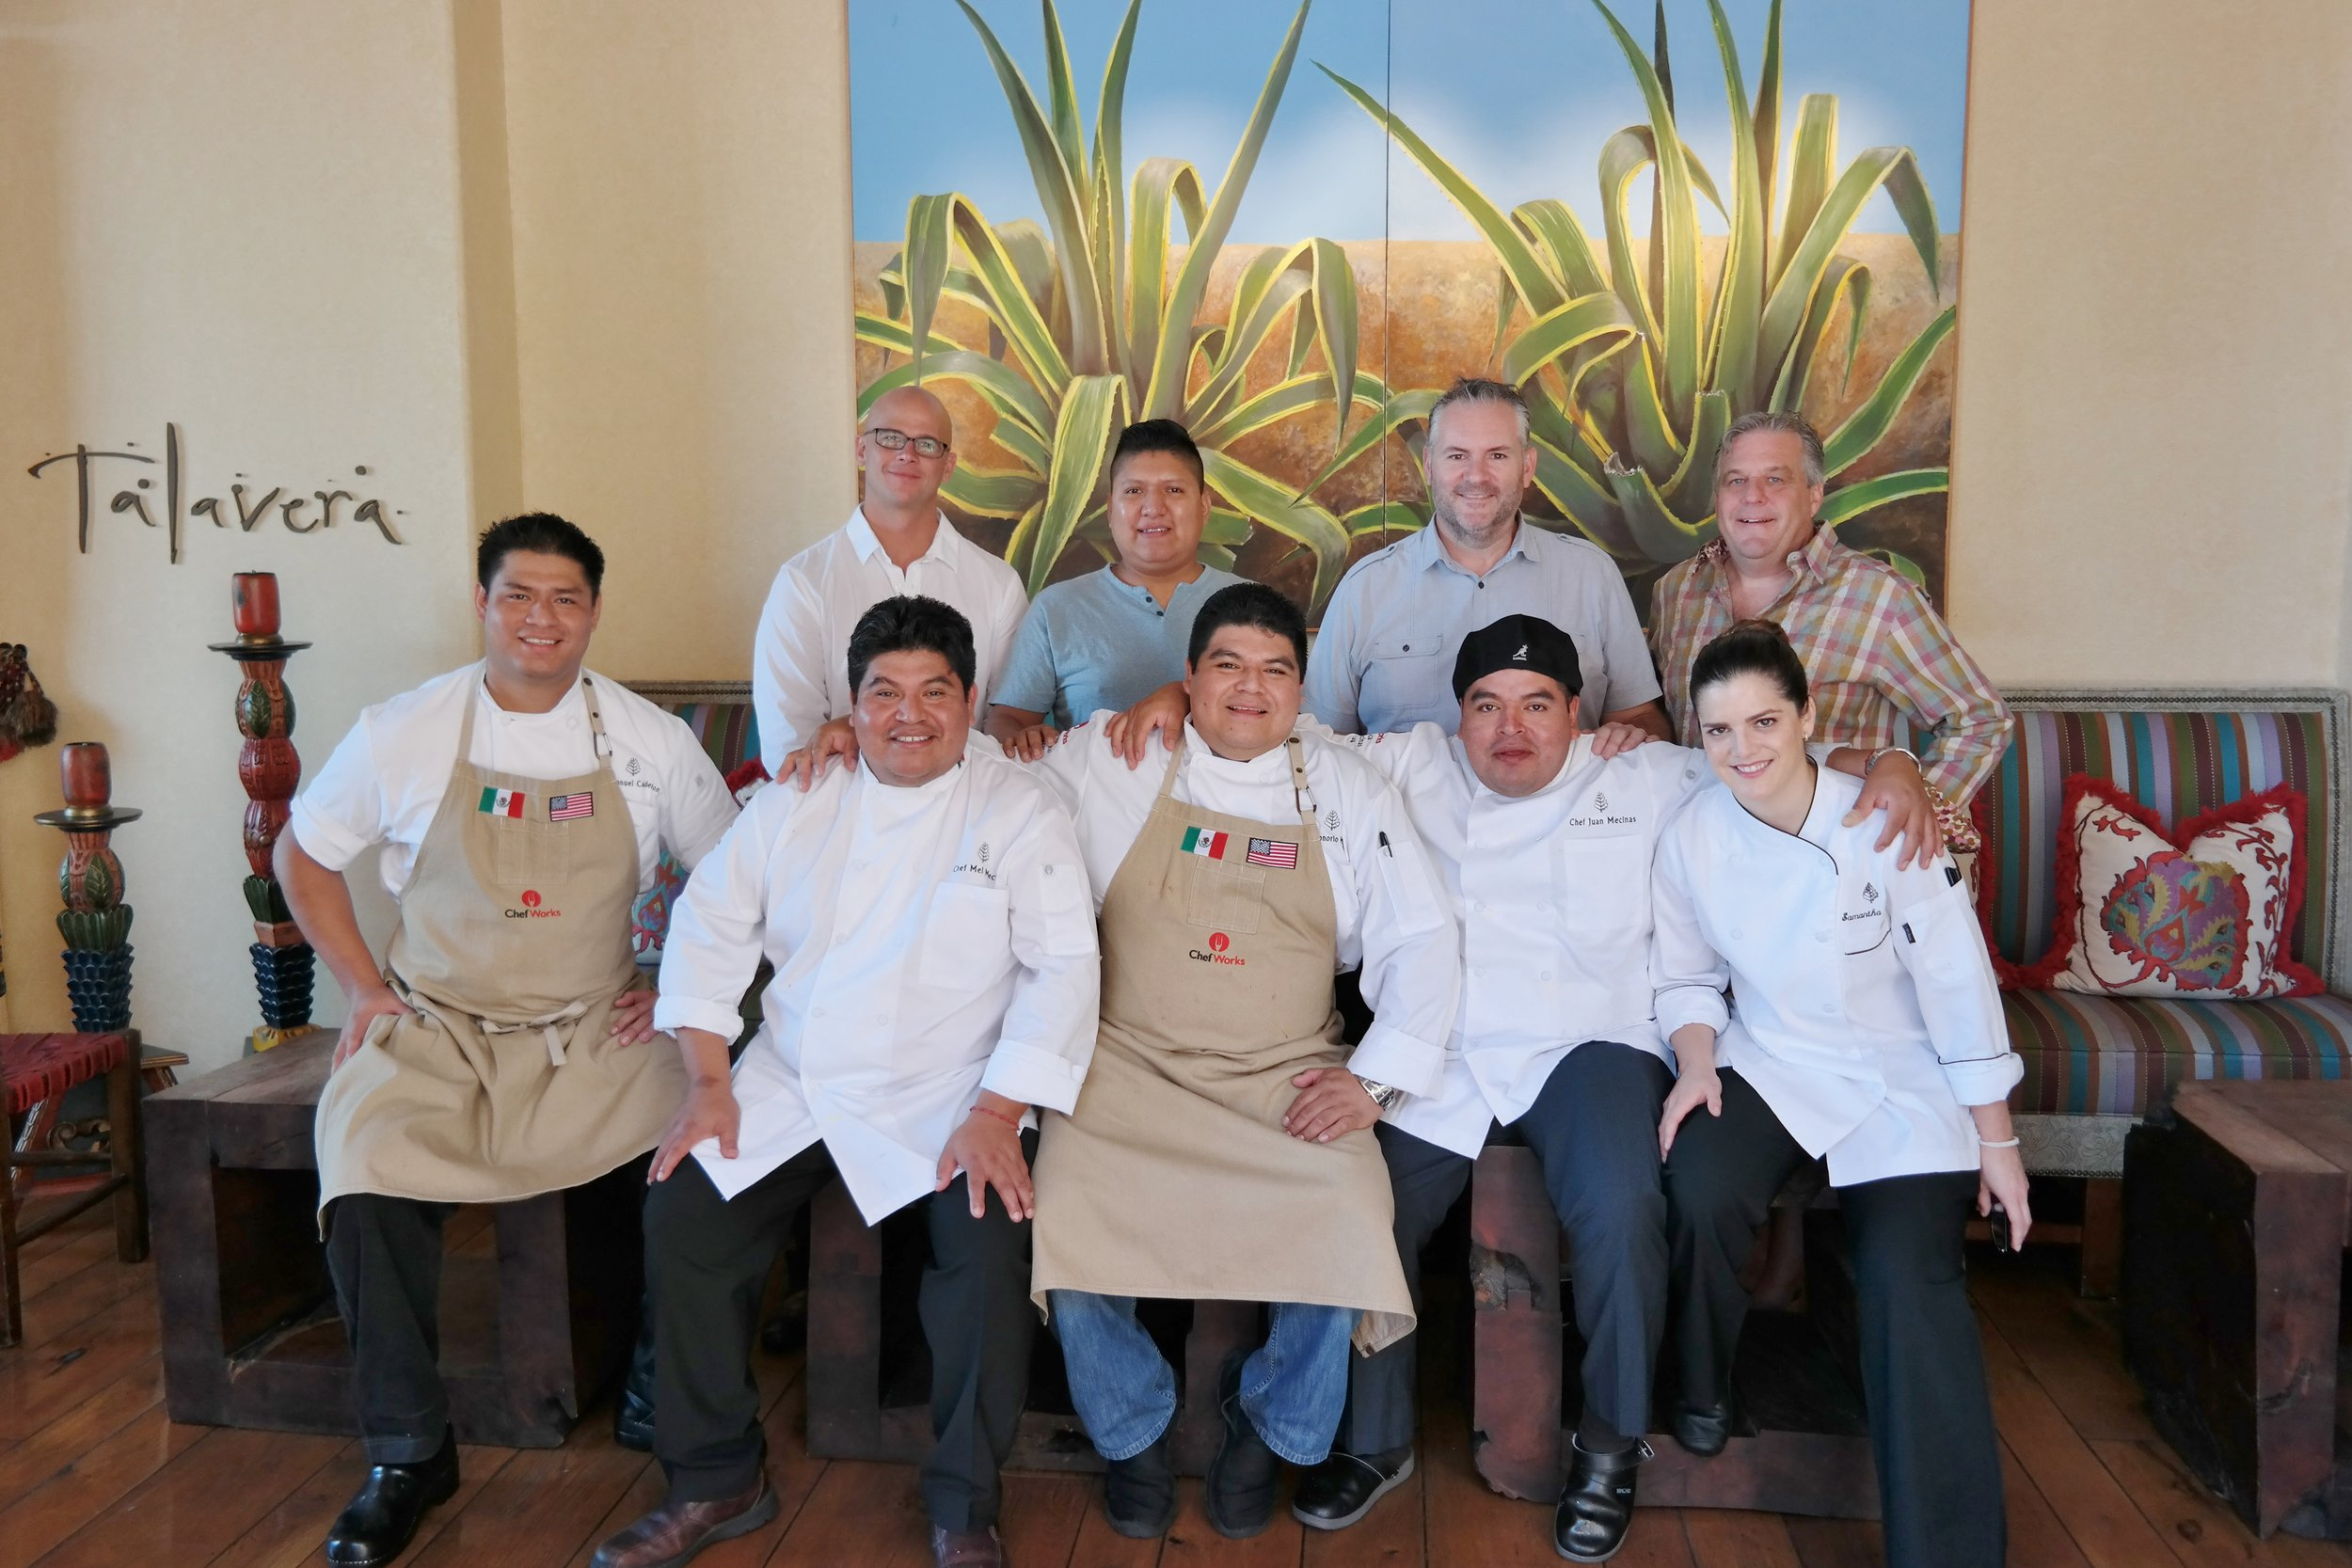 L to R, Row 1: Chefs Manny Calderon, Mel Mecinas, Honorio Mecinas, Juan Mecinas, and Samantha Sanz. Back Row: Chef Cory Oppold of Atlas Bistro, Chef Fidencio Alatriste of Toro, Steve Kraus of Press Coffee, and Chef Michael Cairns of the Omni Scottsdale at Montelucia